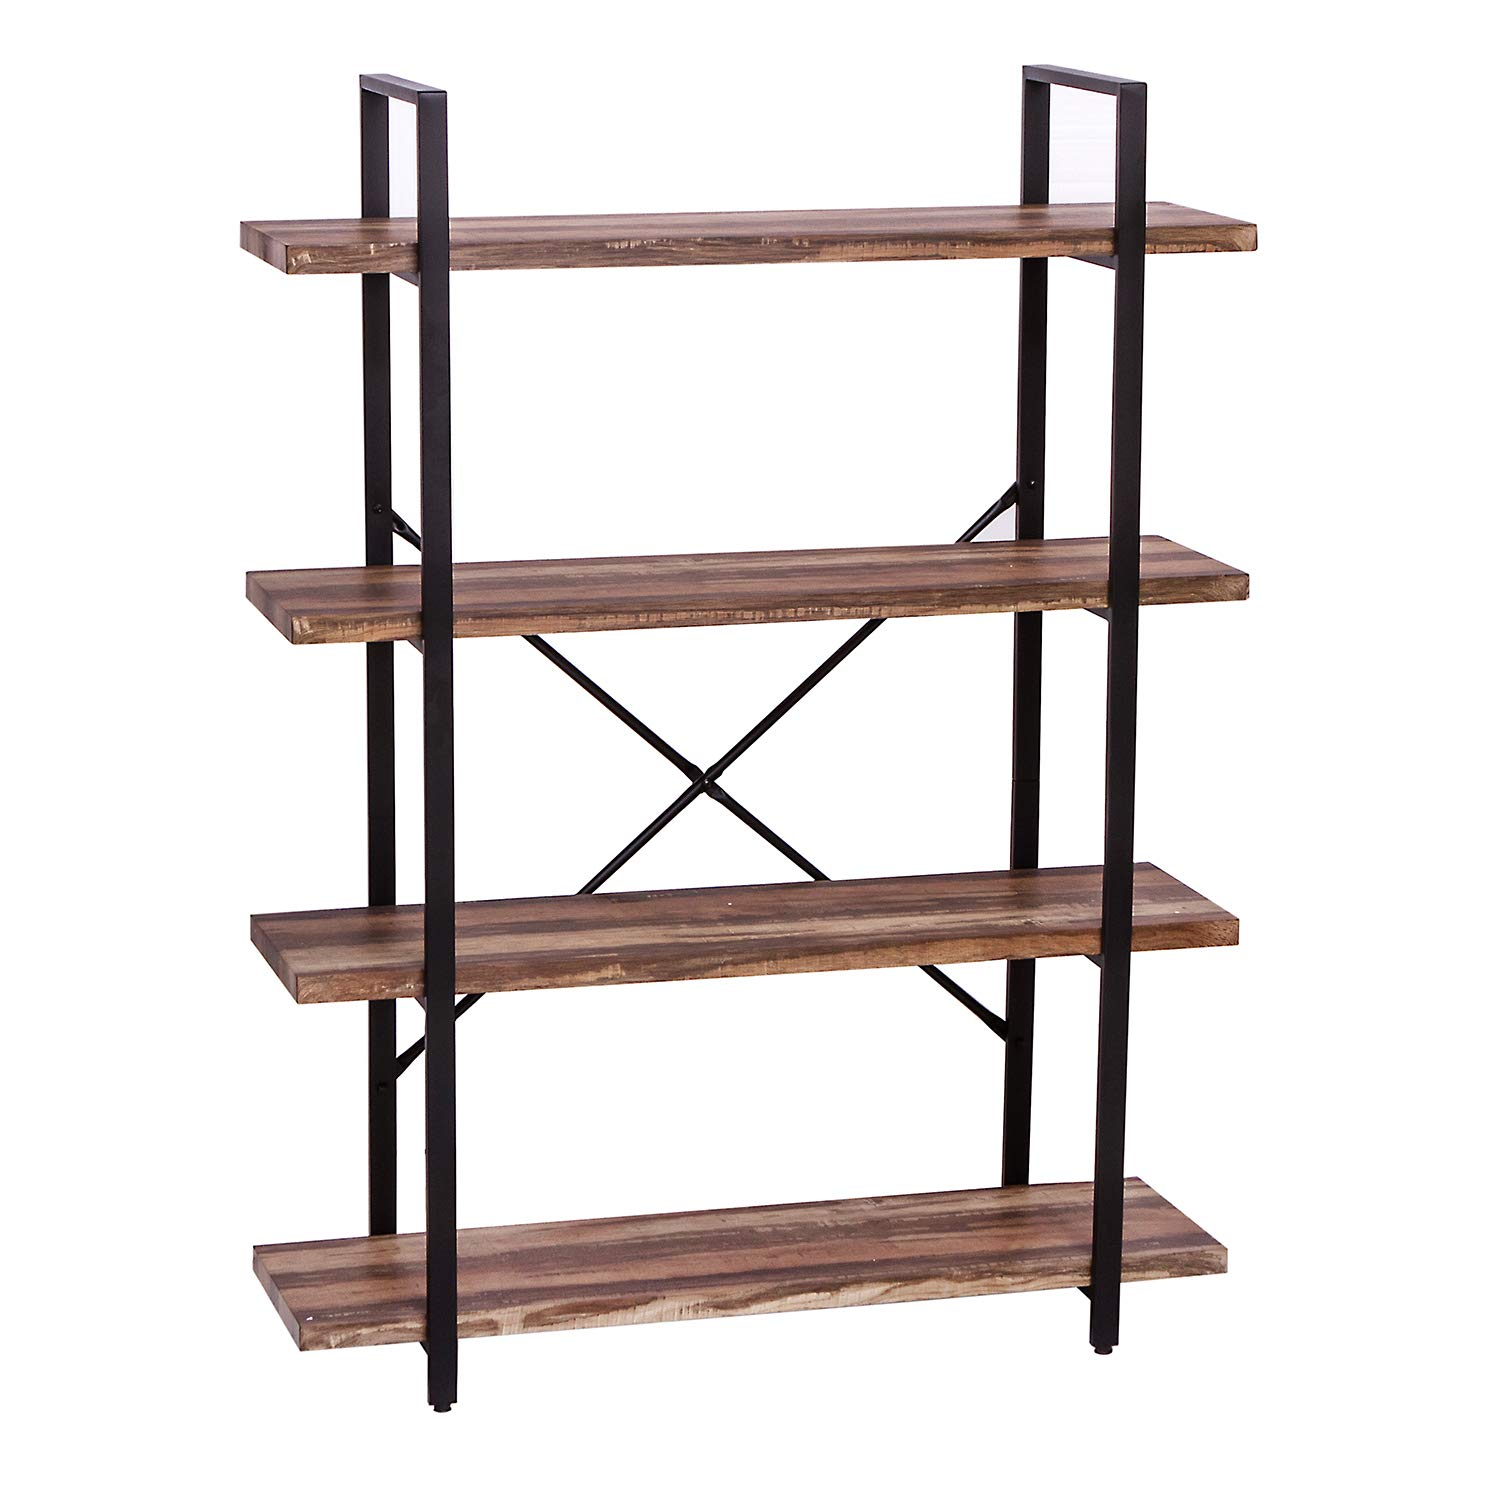 IRONCK Bookshelf and Bookcase 4-Tier, 130lbs shelf Load Capacity, Industrial Bookshelves Storage Display Shelves, Home Office Furniture, Wood and Metal Frame